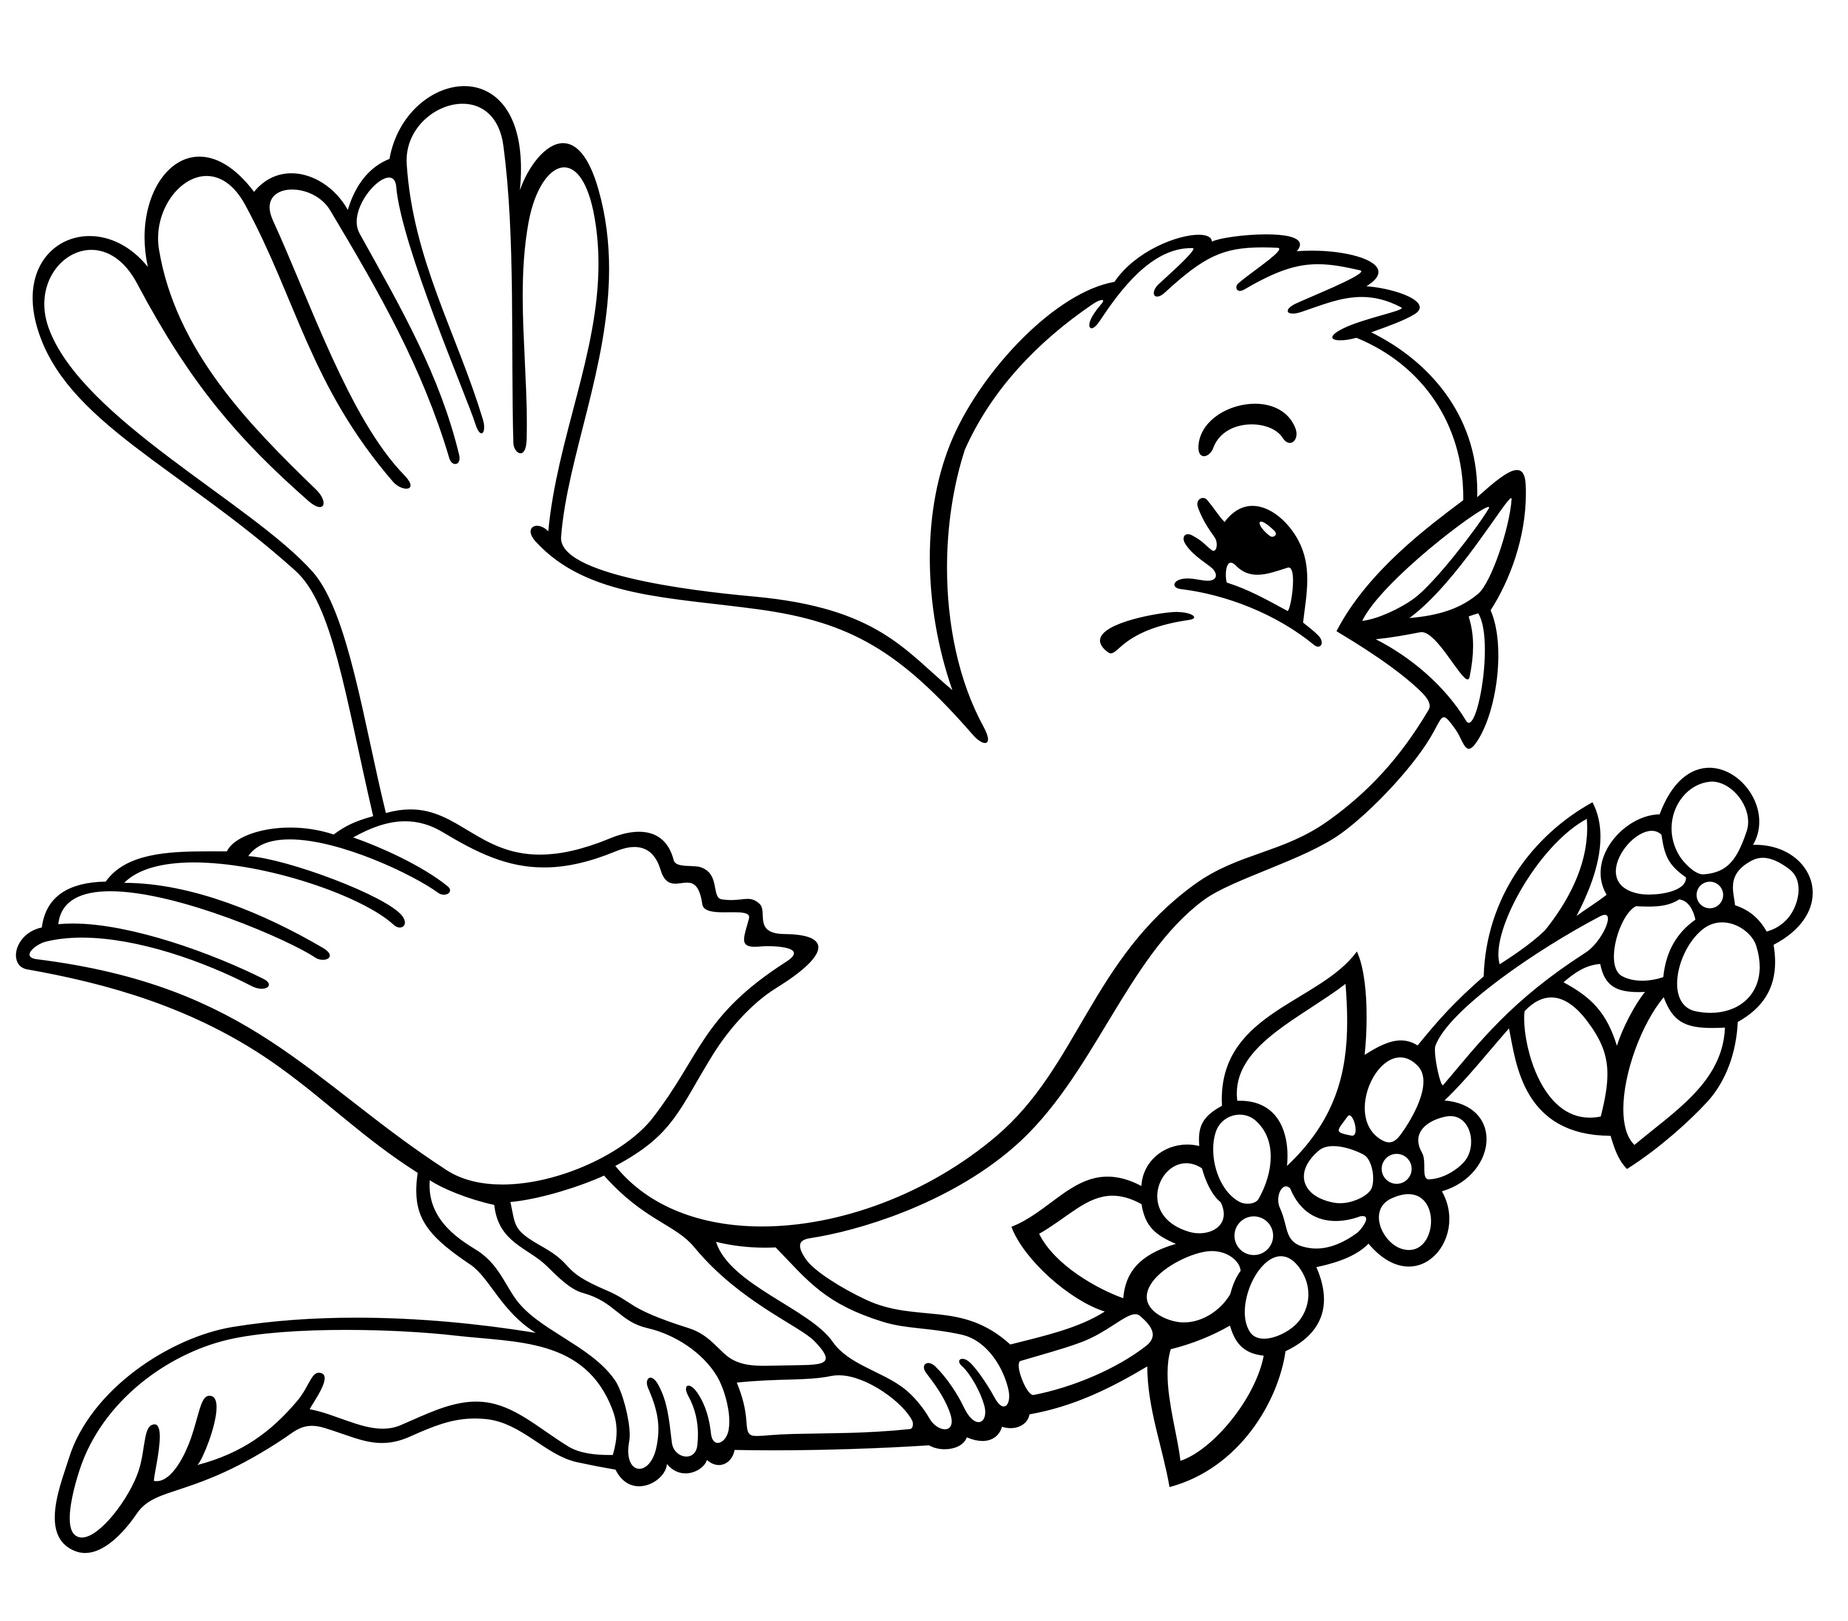 pictures of birds to color hummingbird coloring pages to download and print for free birds color pictures to of